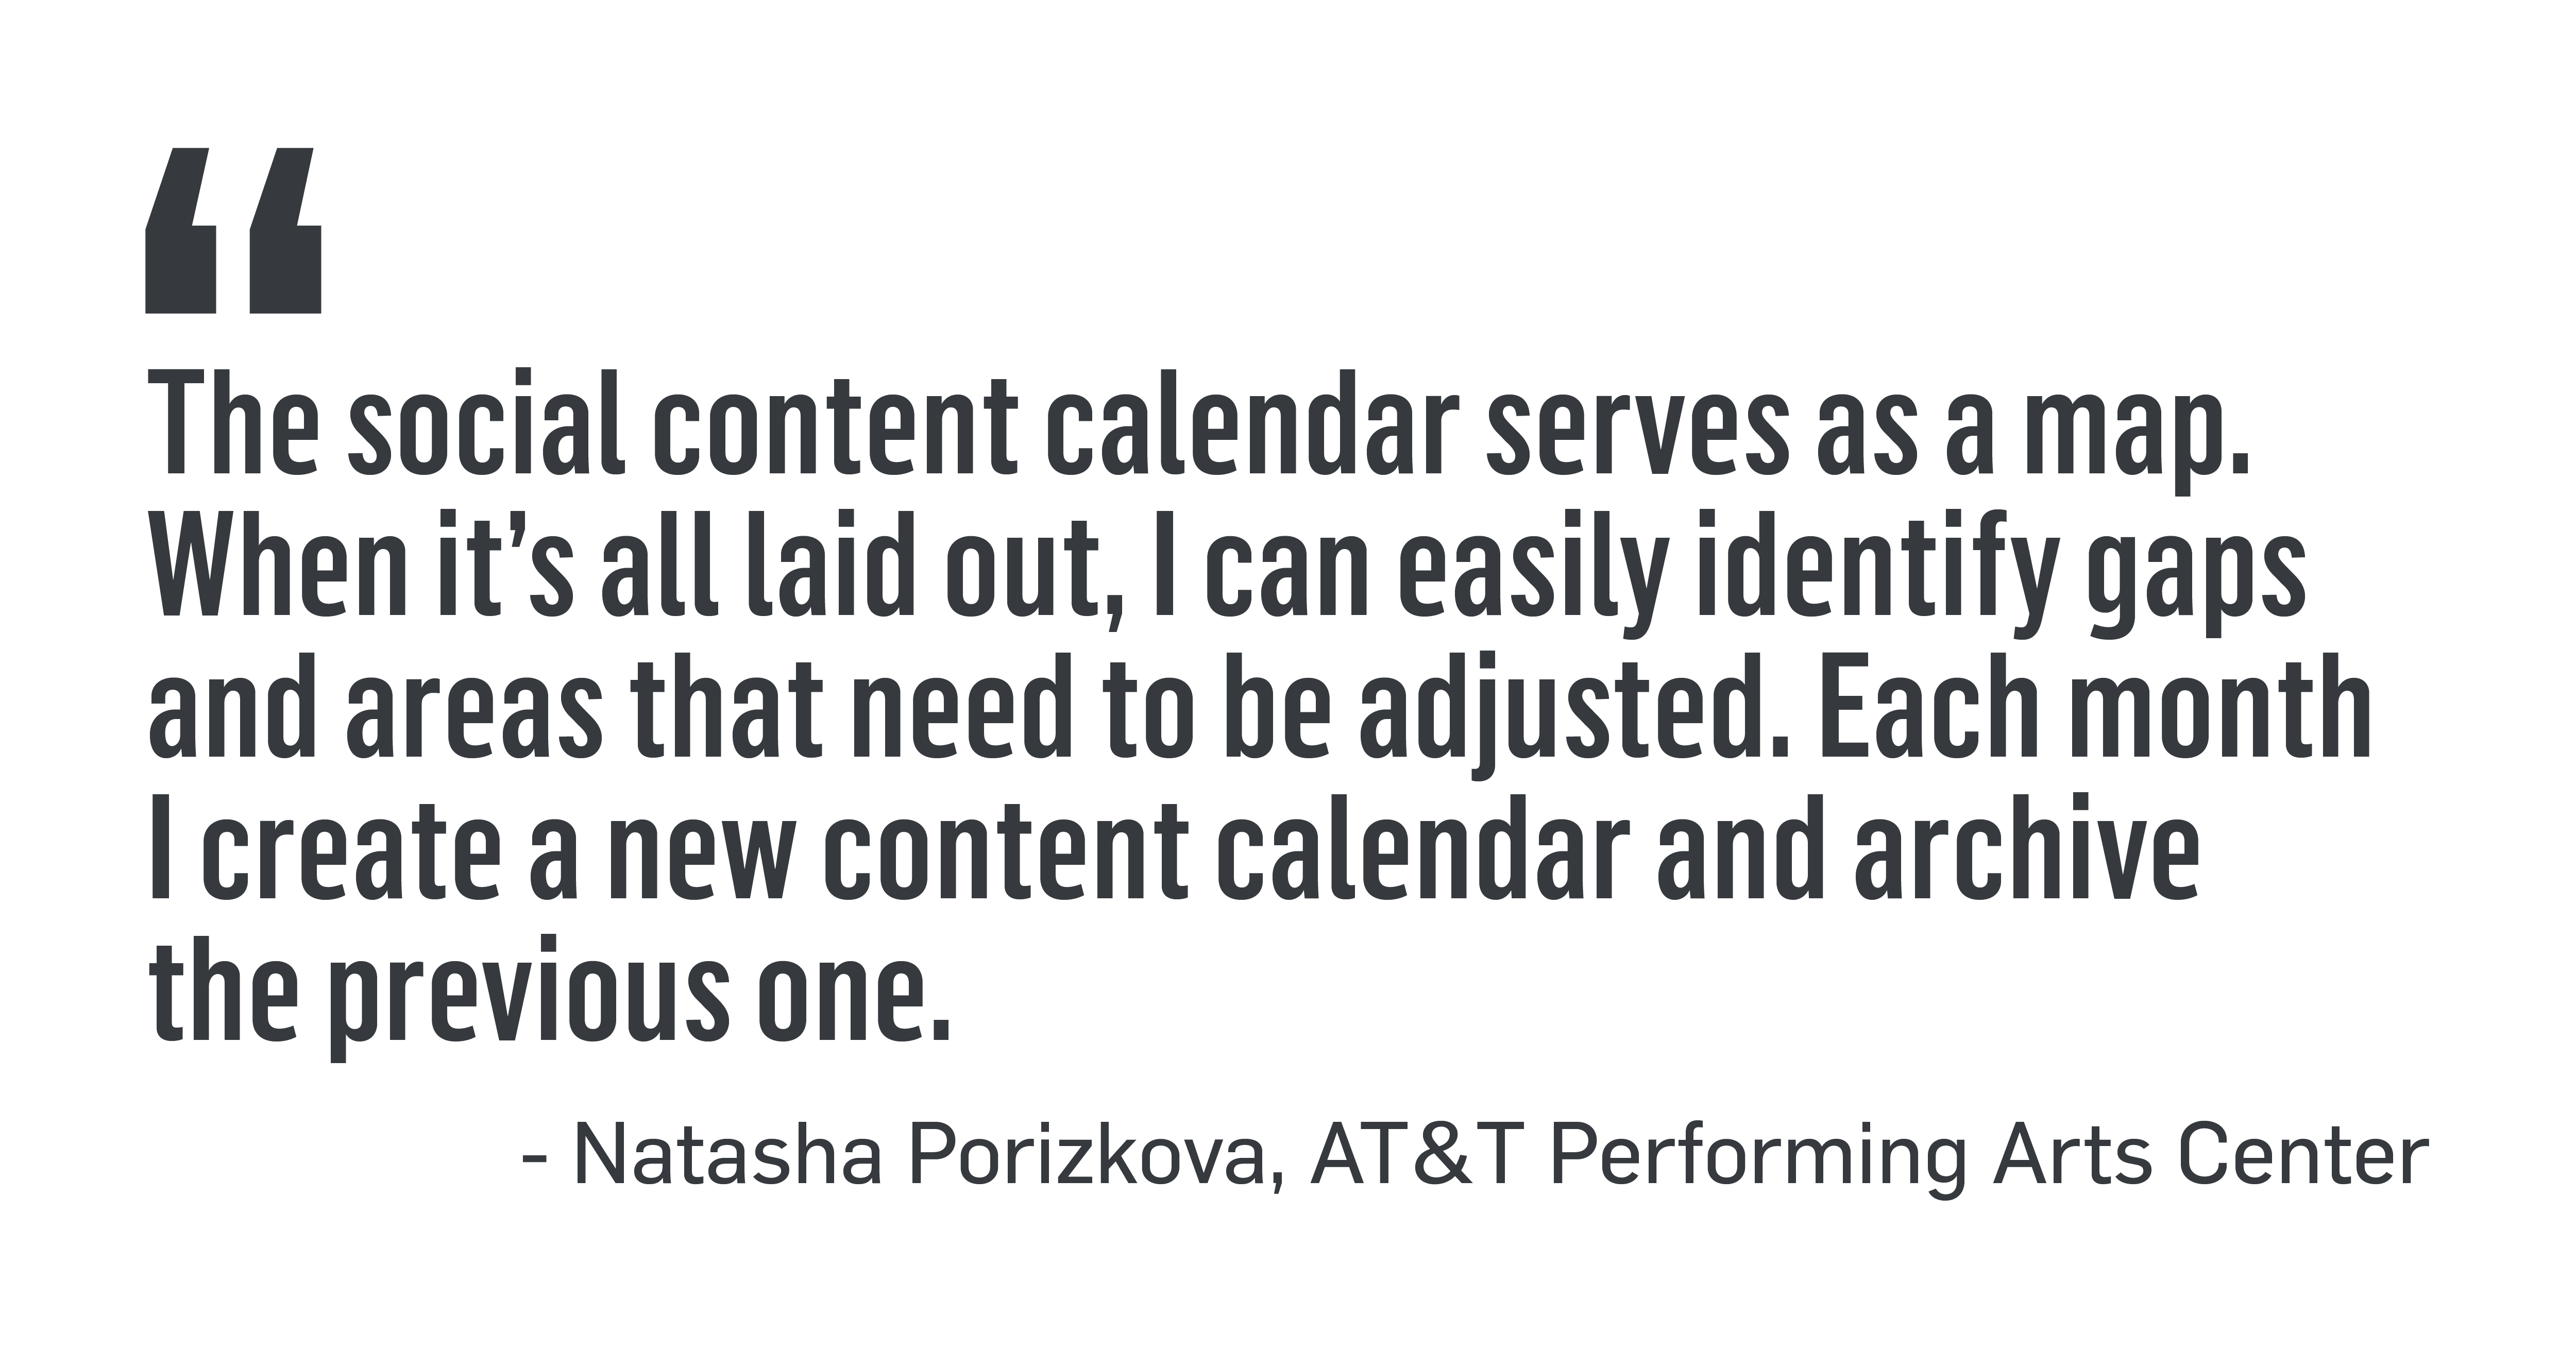 "PULL QUOTE: ""The social content calendar serves as a map. When it's all laid out, I can easily identify gaps and areas that need to be adjusted. Each month I create a new content calendar and archive the previous one."" - Natasha Porizkova, AT&T Performing Arts Center"